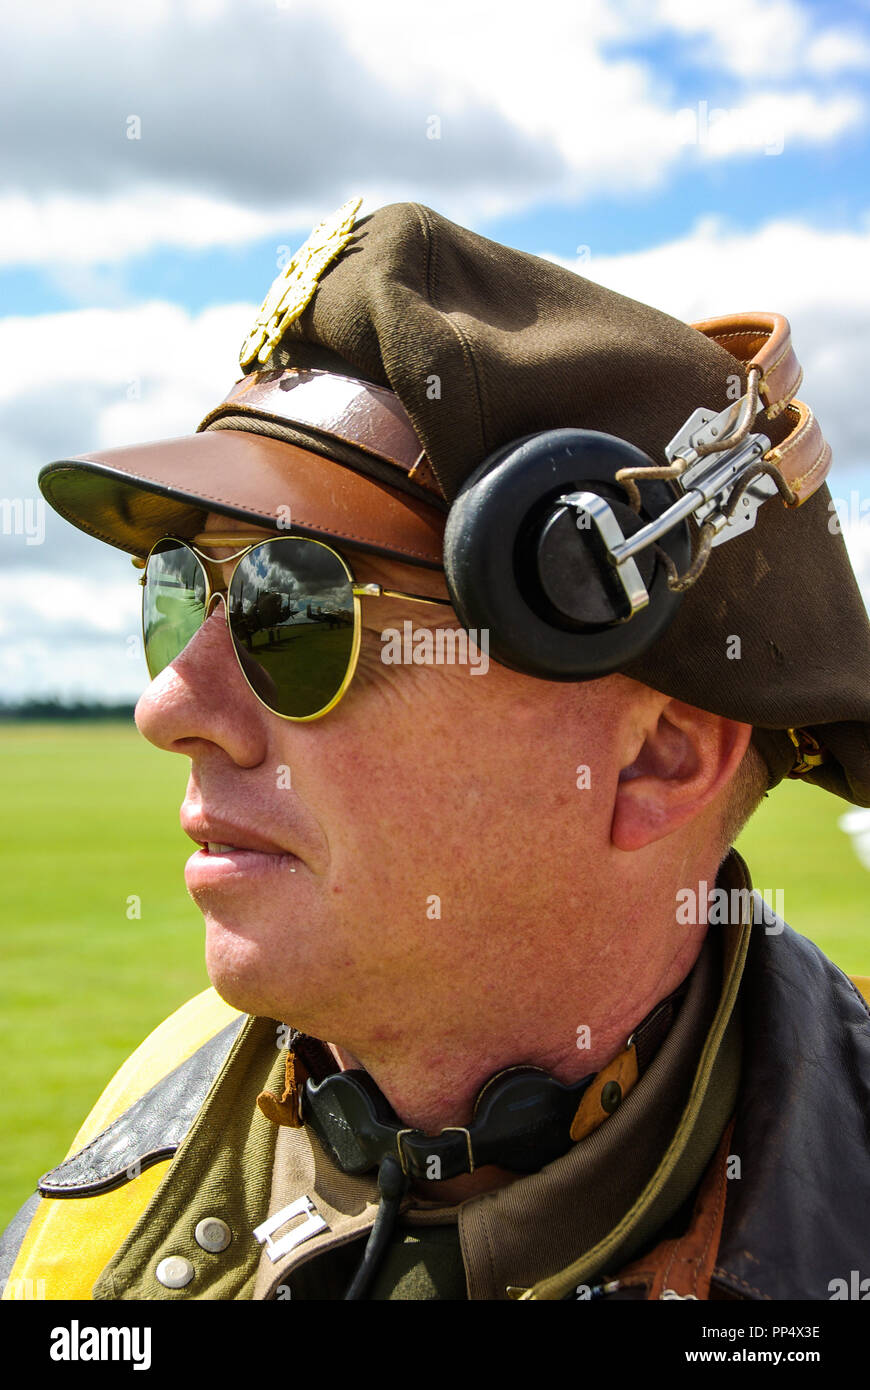 Second World War US Army Air Force bomber pilot re-enactor with